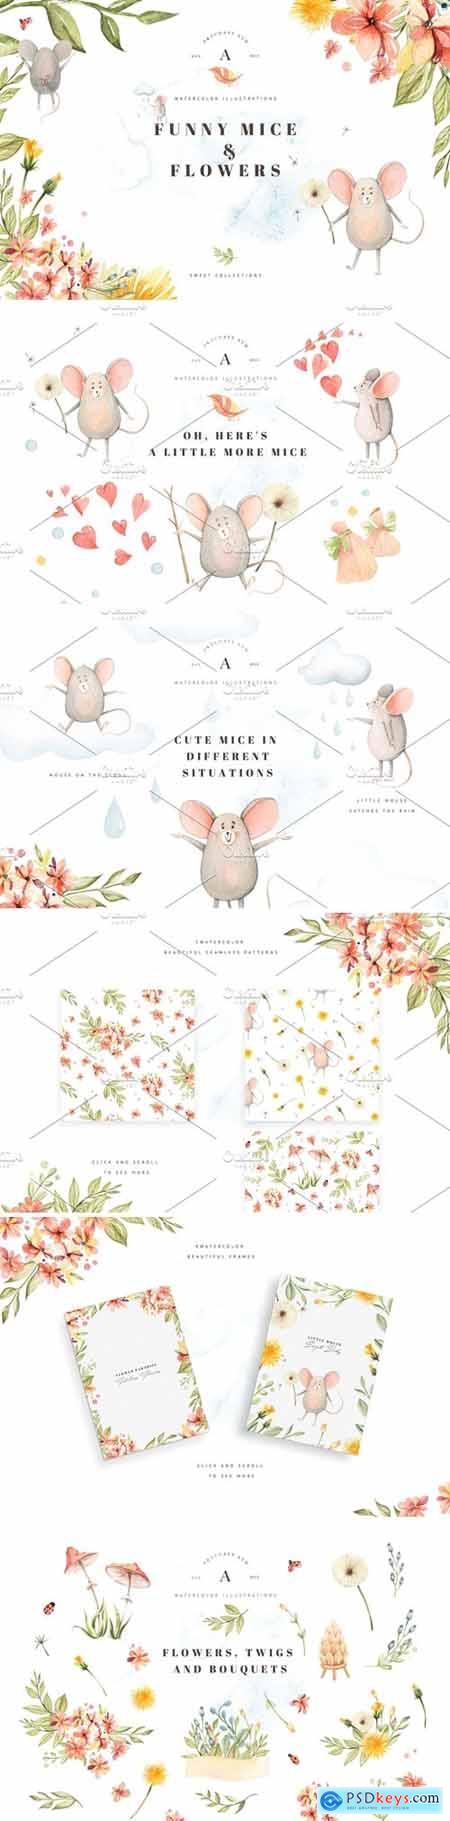 Funny Little Mice & Flowers 3774621